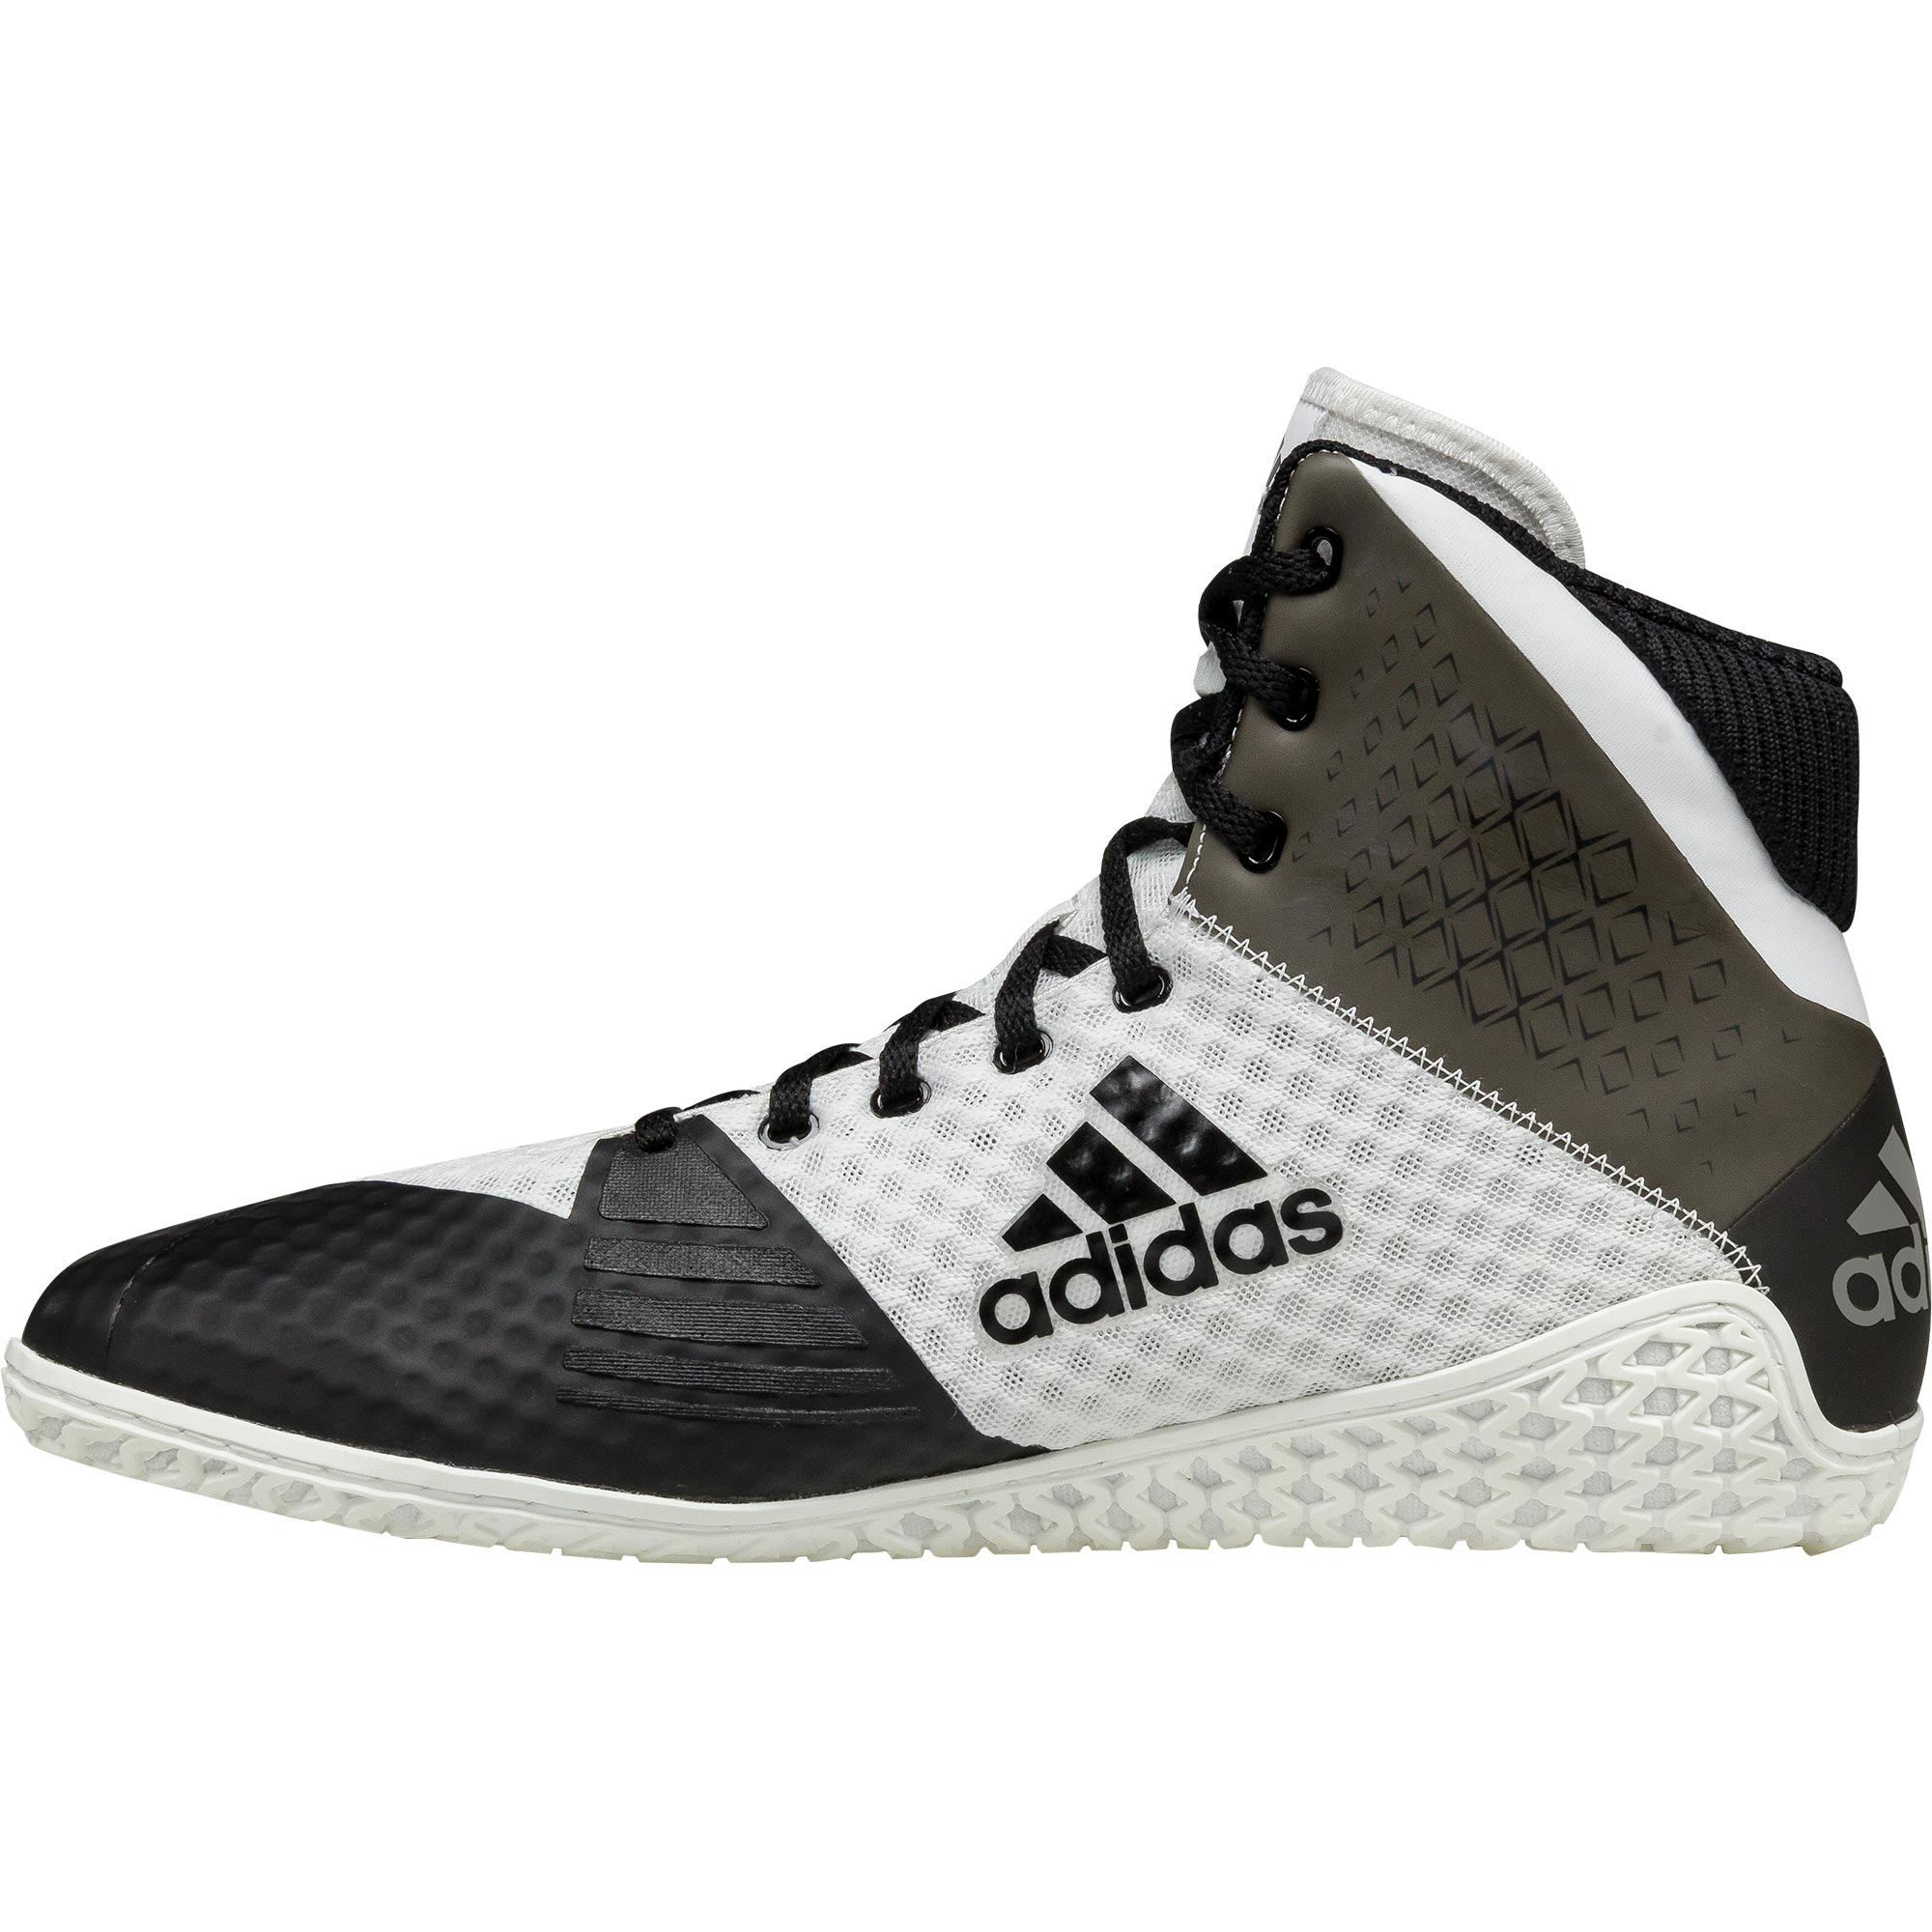 e804fe99390 ... Mat Wizard 4 White Black Brown frontAdidas Mat Wizard 4 White Black  Brown backAdidas Mat Wizard 4 White Black Brown soleAdidas Mat Wizard 4  White Black ...